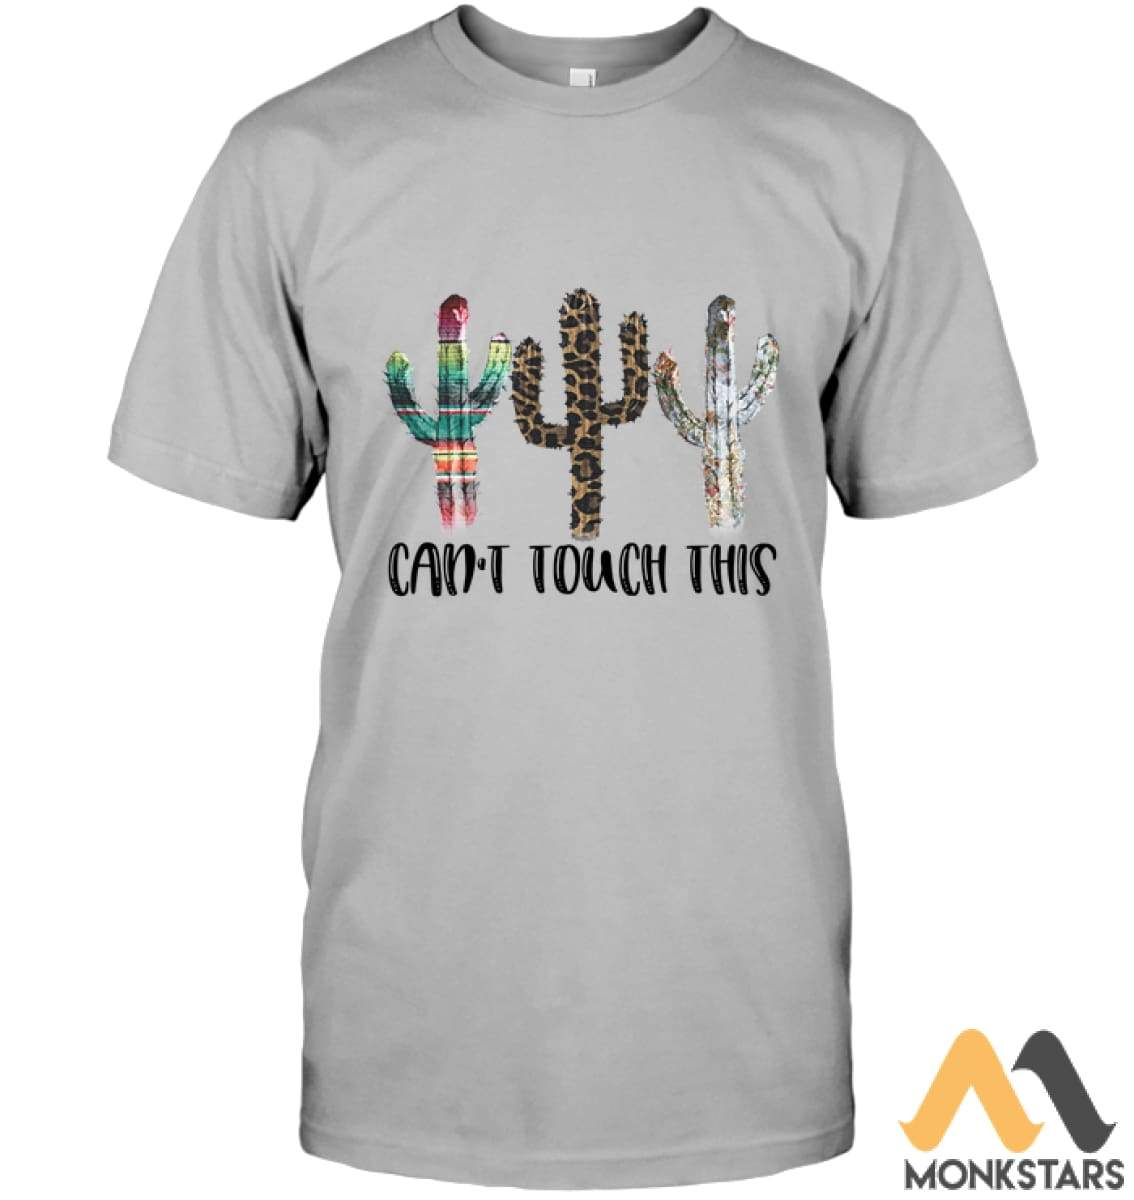 7a80567de7c4 Funny Cactus Shirts Unisex Short Sleeve Classic Tee   Light Steel S Apparel